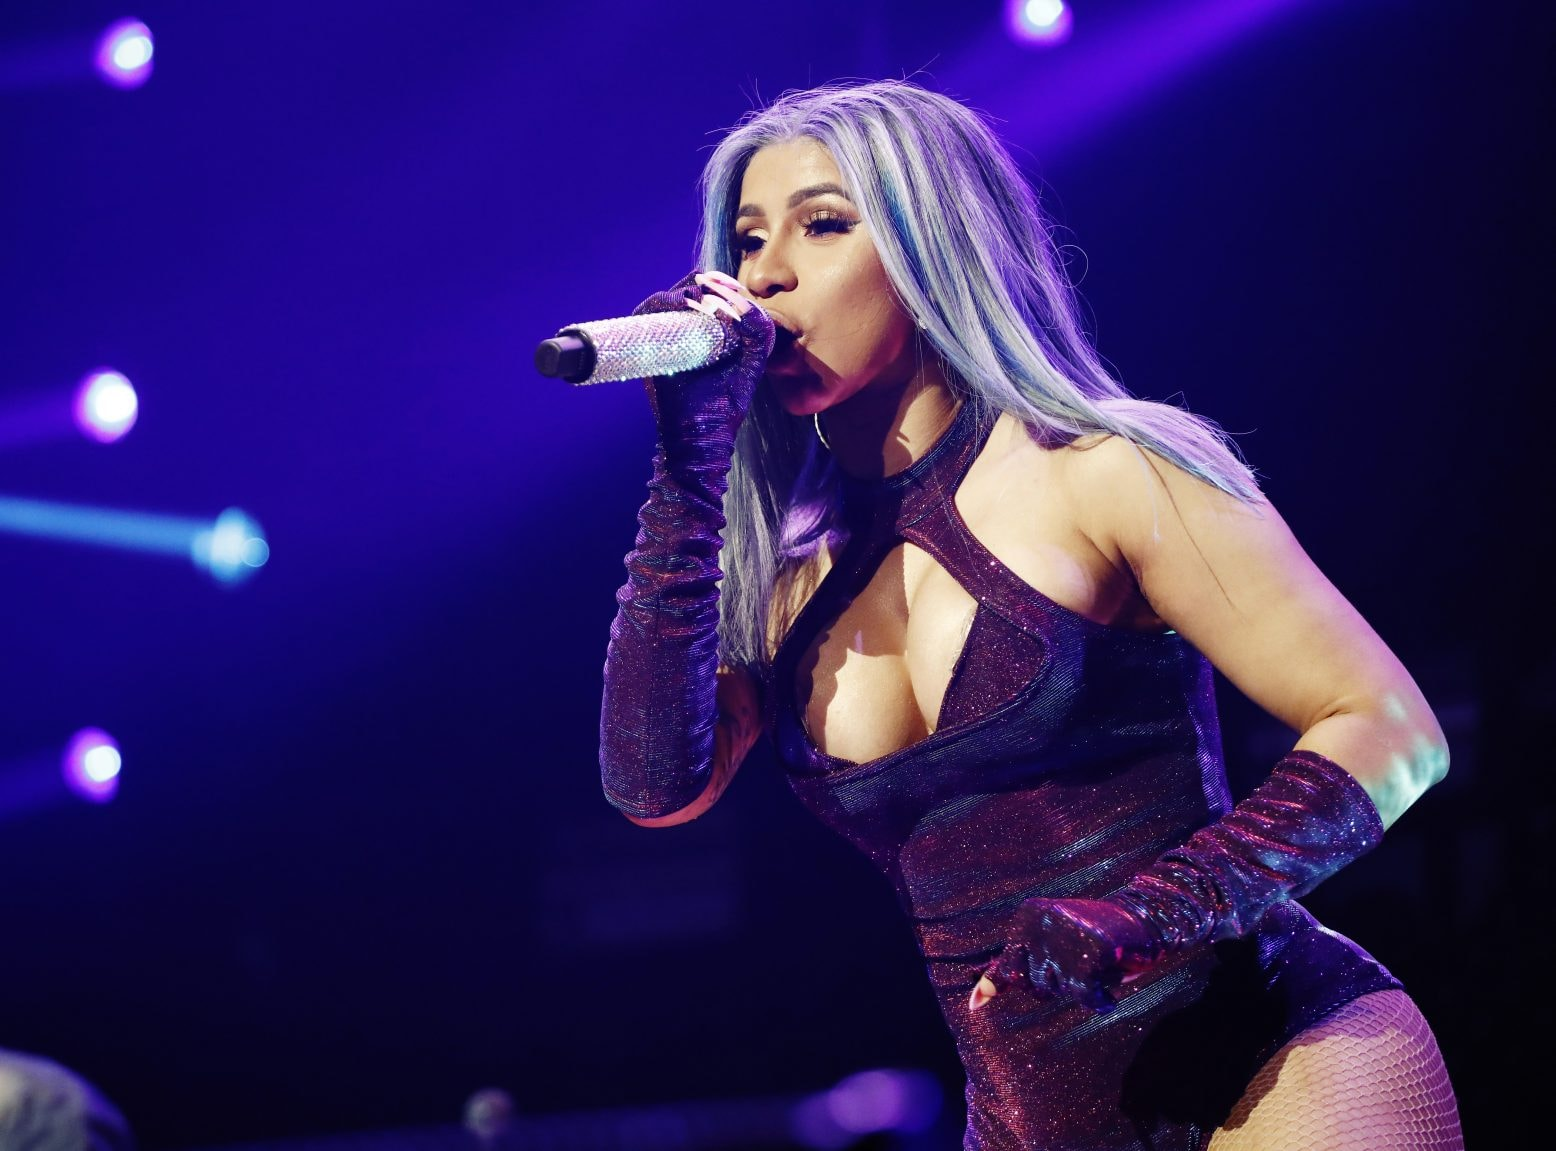 Cardi B Nude Photos and Porn - 2021 LEAKED ONLINE